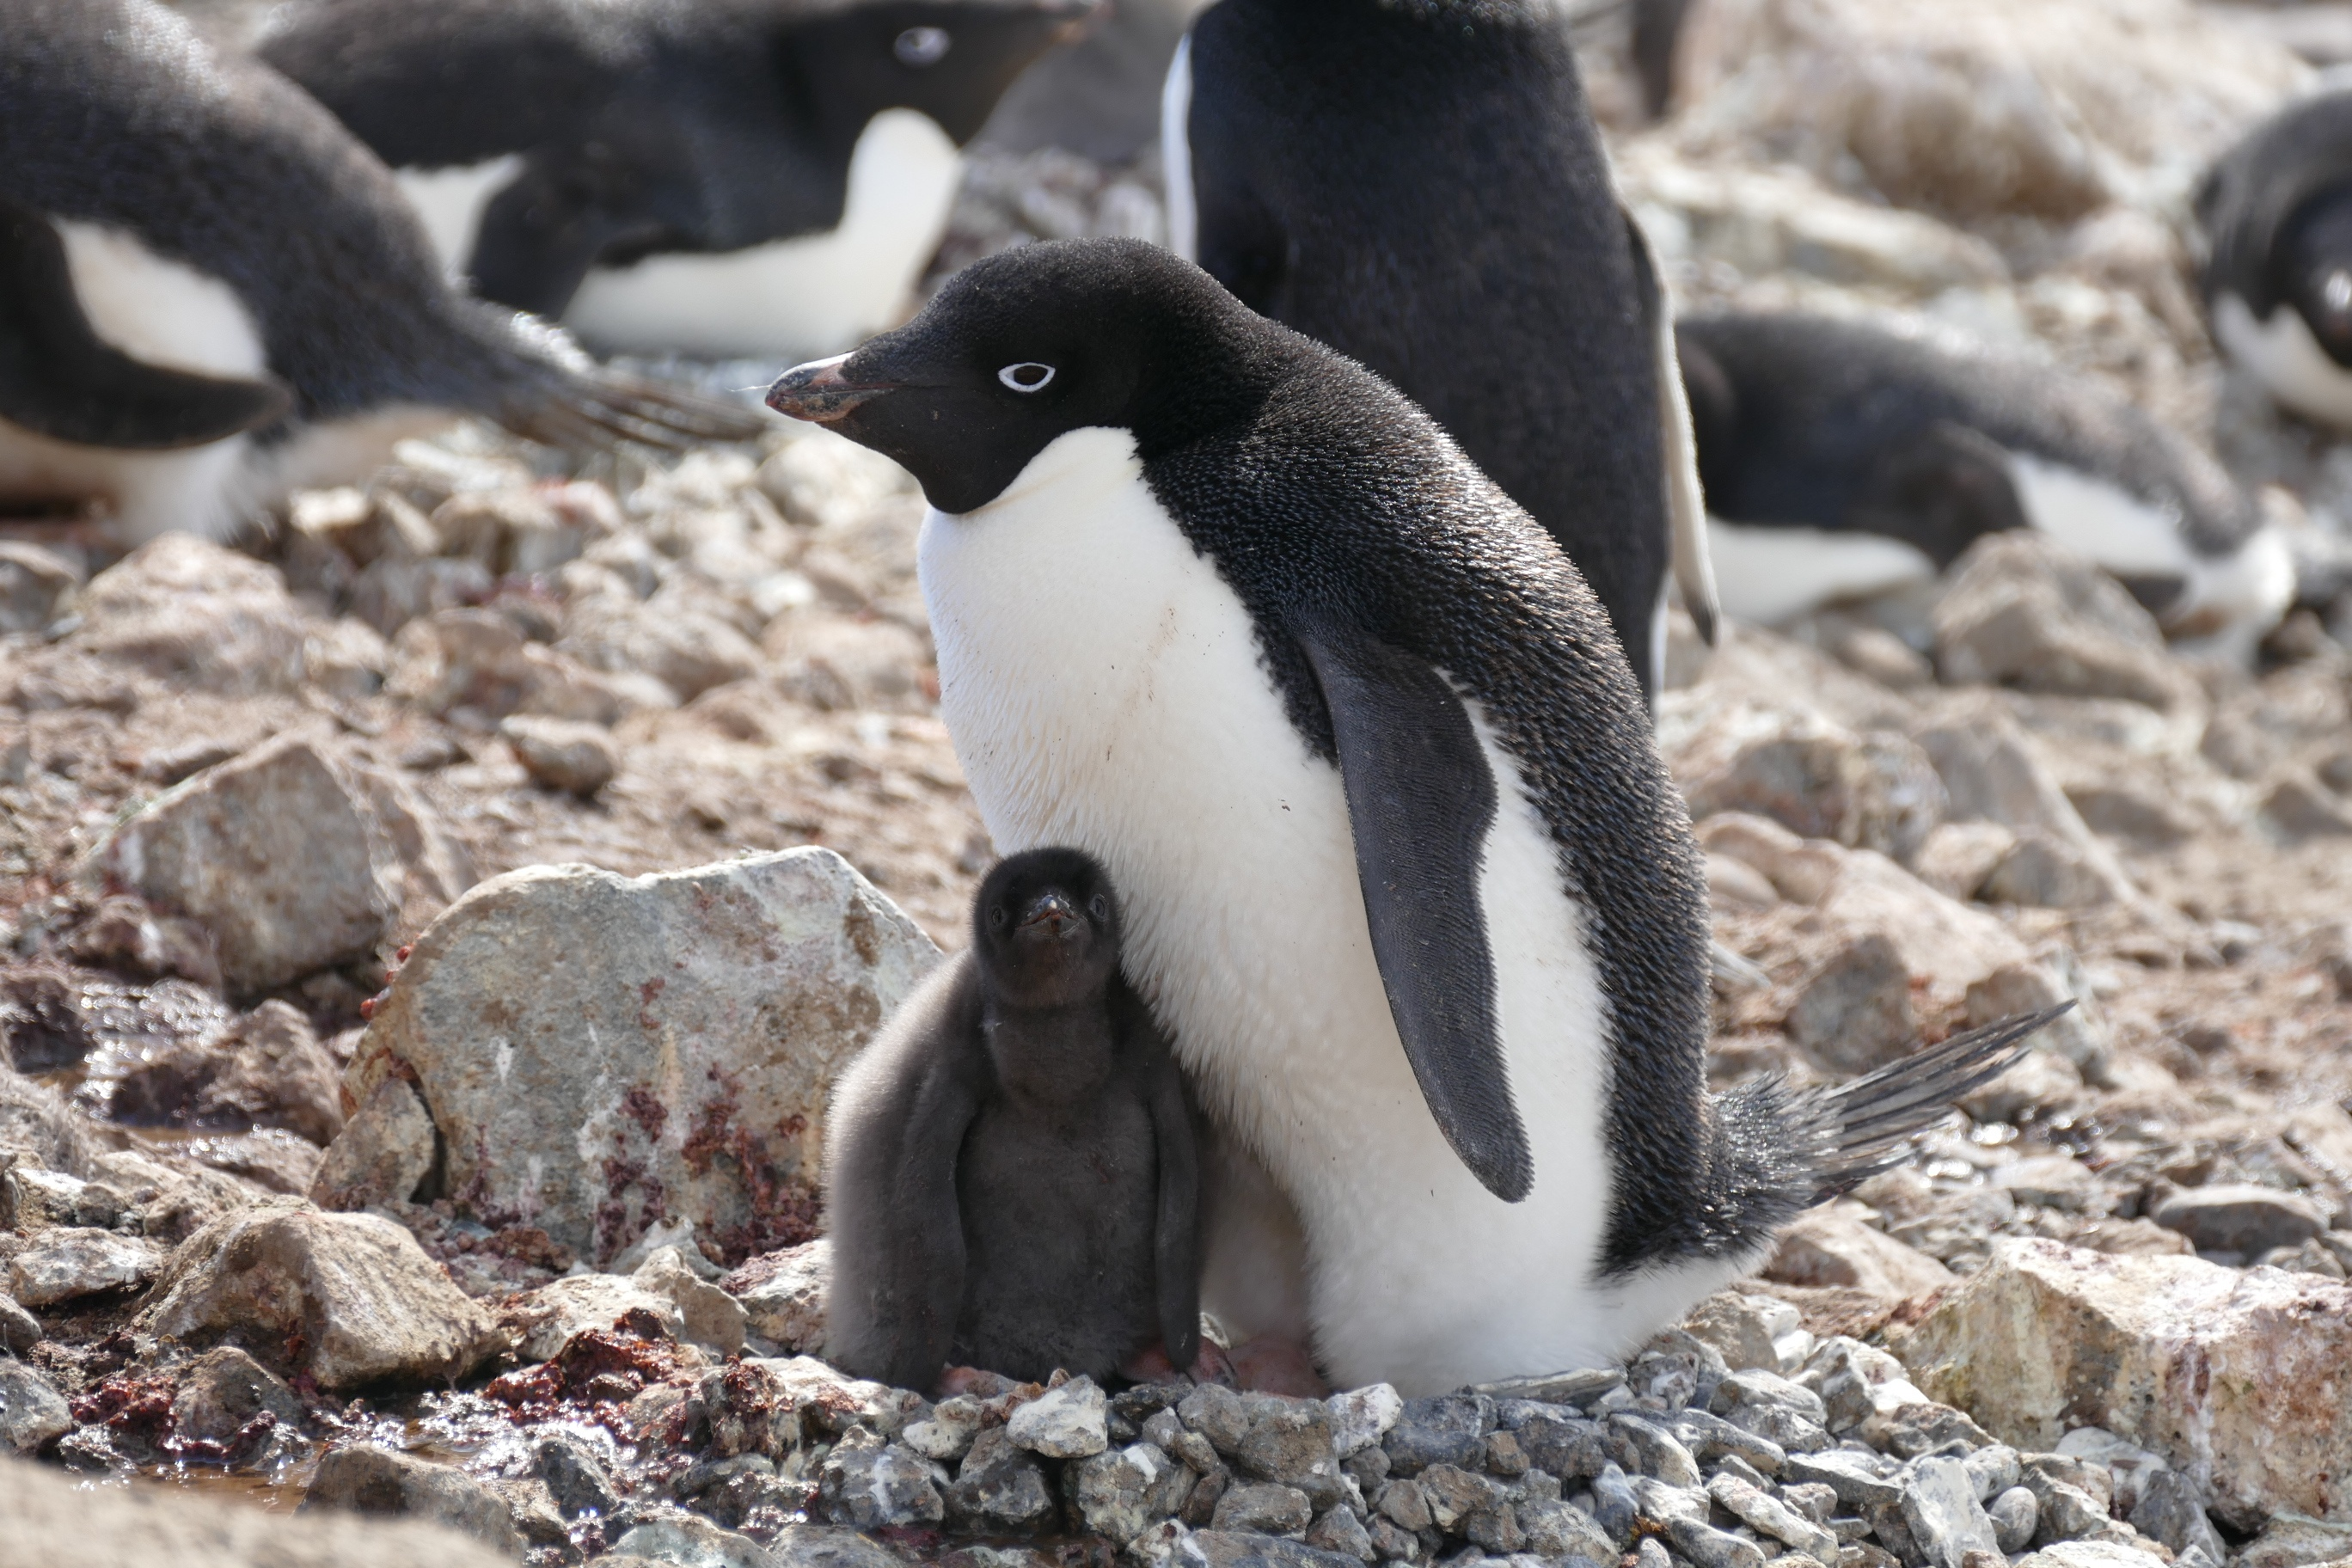 Starting the year in Antarctica yielded one of Noah's favorite birds, the Adelie Penguin, on January 1st.